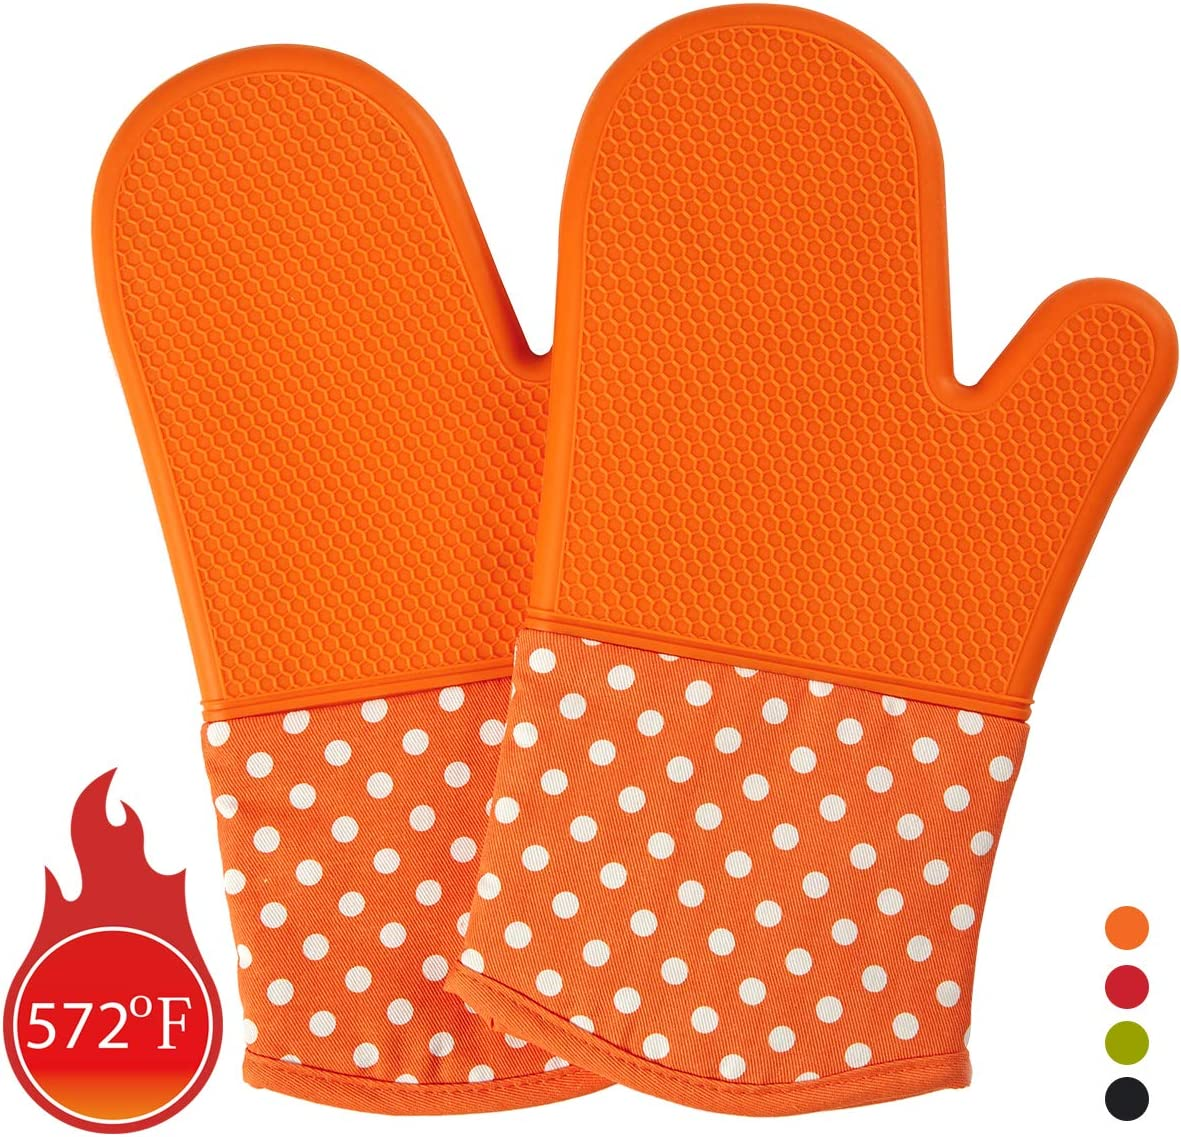 N2 Heat Resistant Silicone Kitchen Oven Mitts, Extra Long Professional Oven Mitt for 572°F, Set of 2 Oven Gloves with Quilted Liner for BBQ Cooking, Protect Hands from Hot Surfaces, Orange, 13 Inch